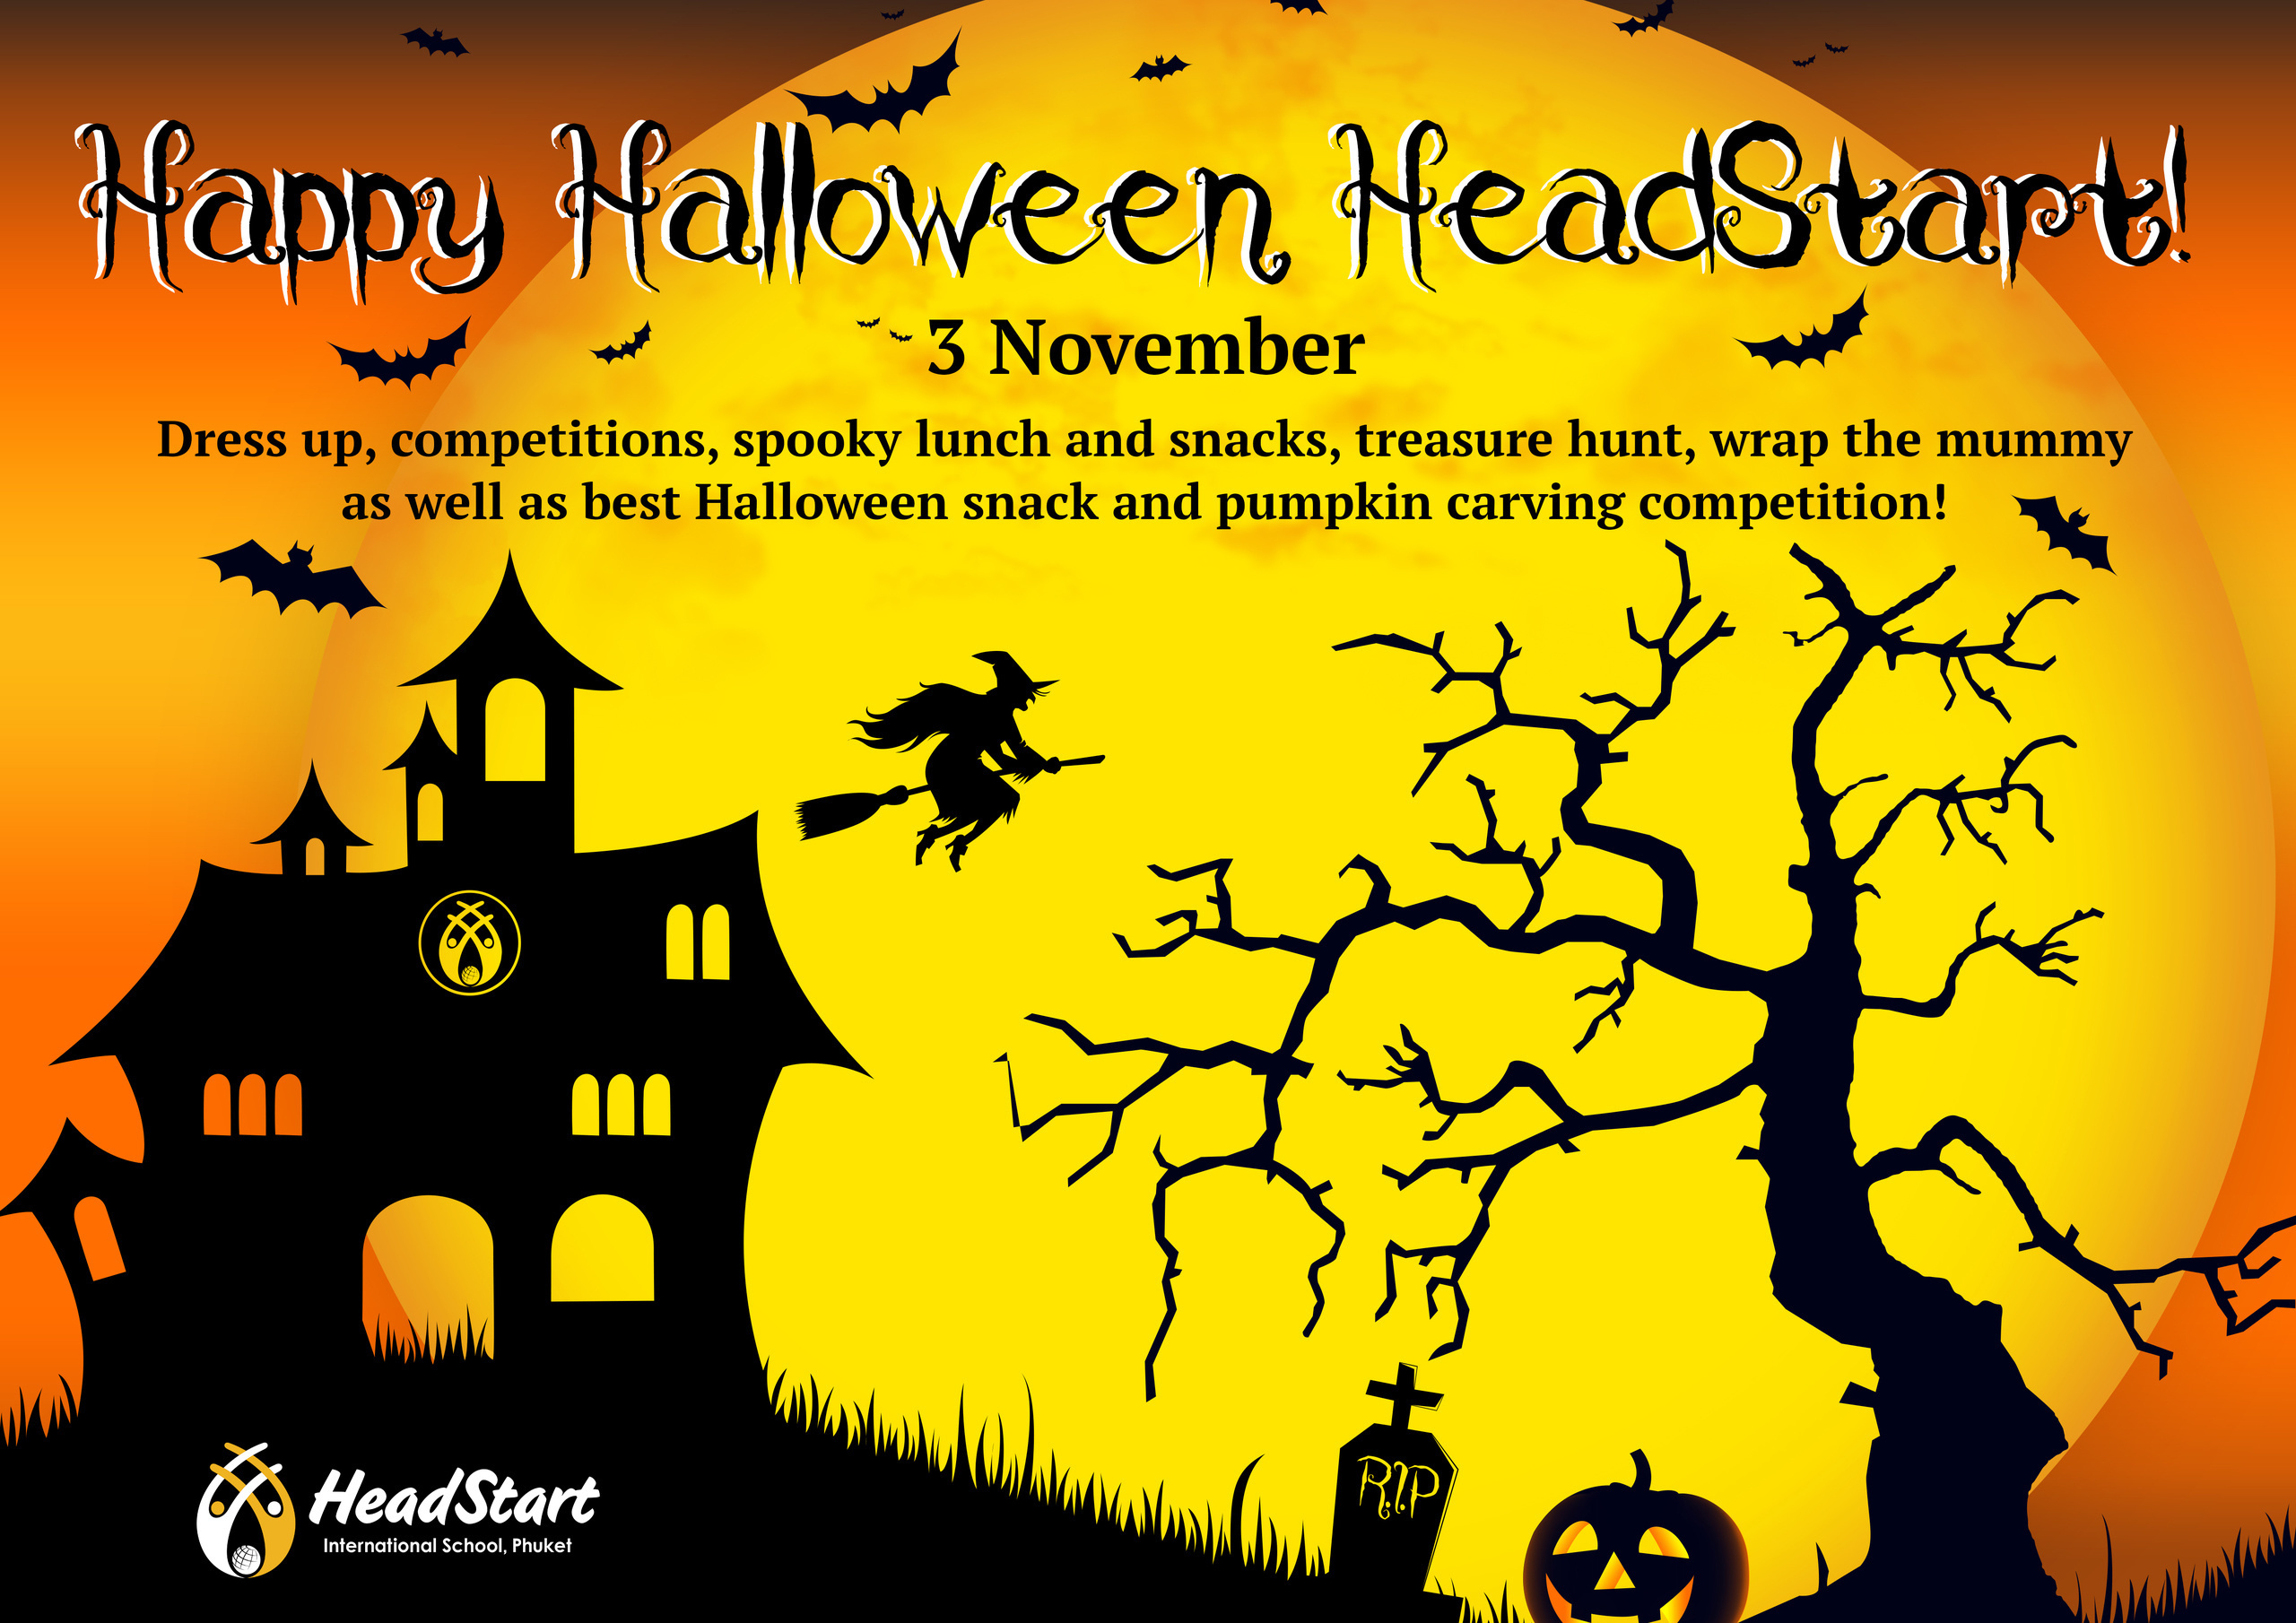 Backdrop for Halloween 04 42 x 29.7 cm